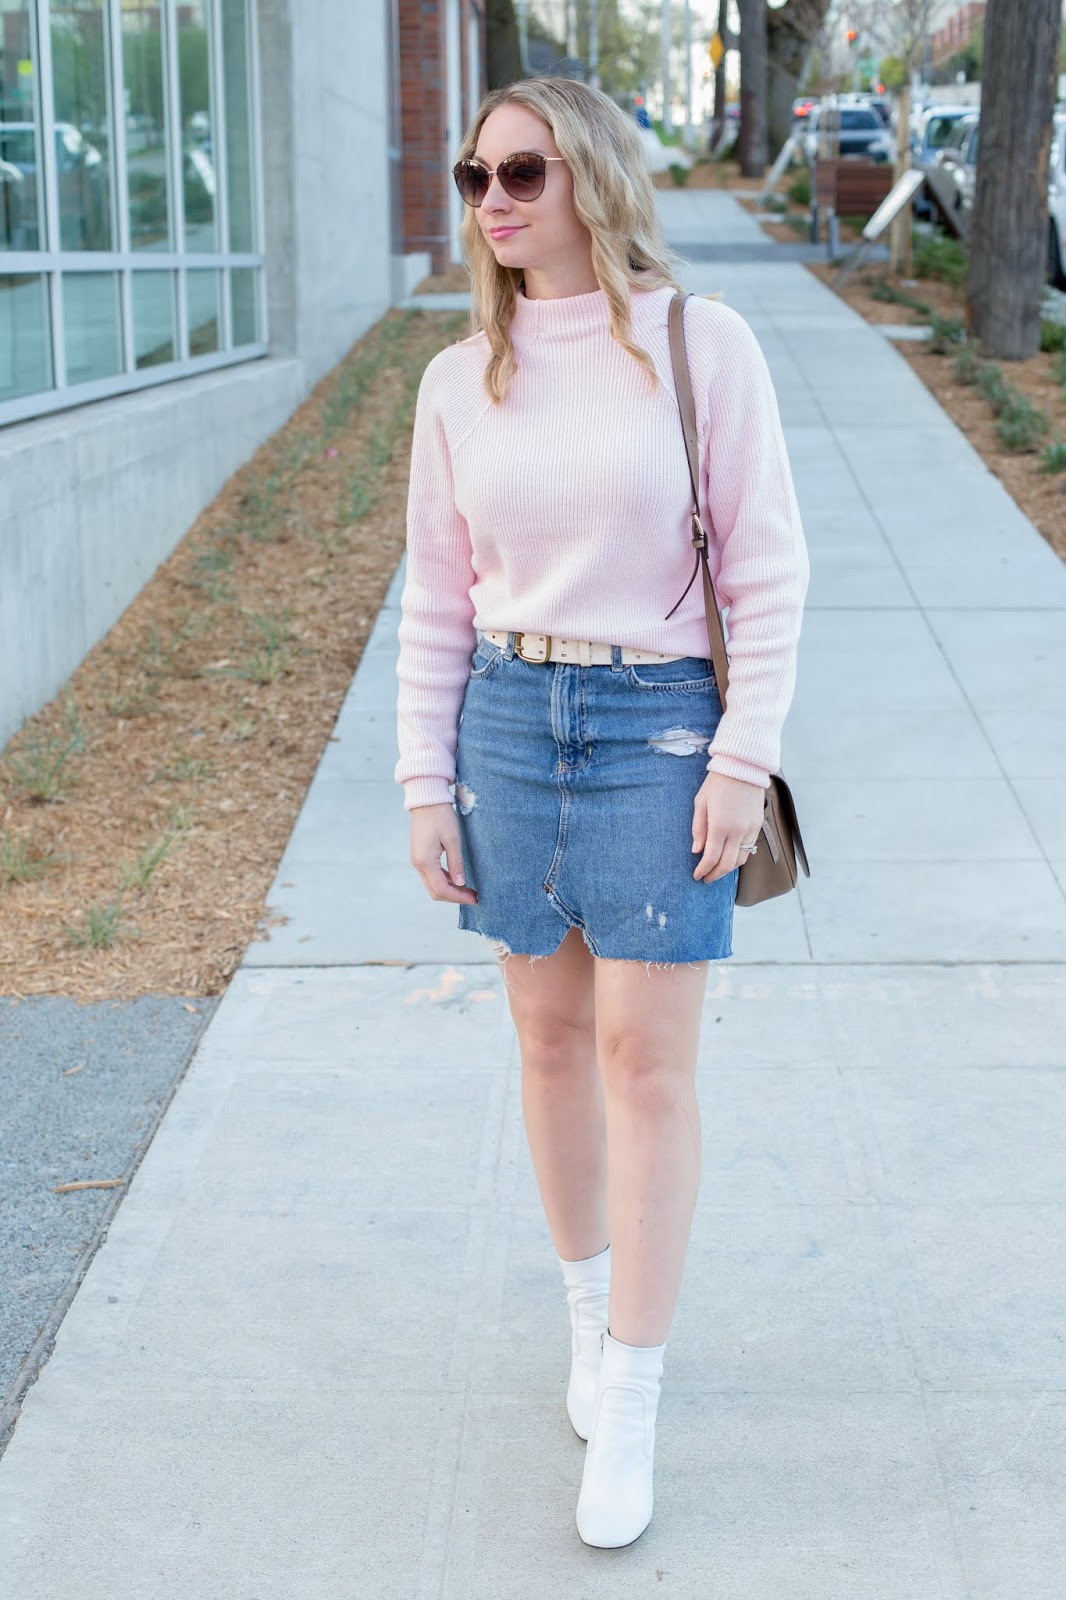 9151abe4d8c80 Please read on for more photos, outfit links, and more of my picks for  on-trend denim skirts and white booties that I think would create perfect  spring ...